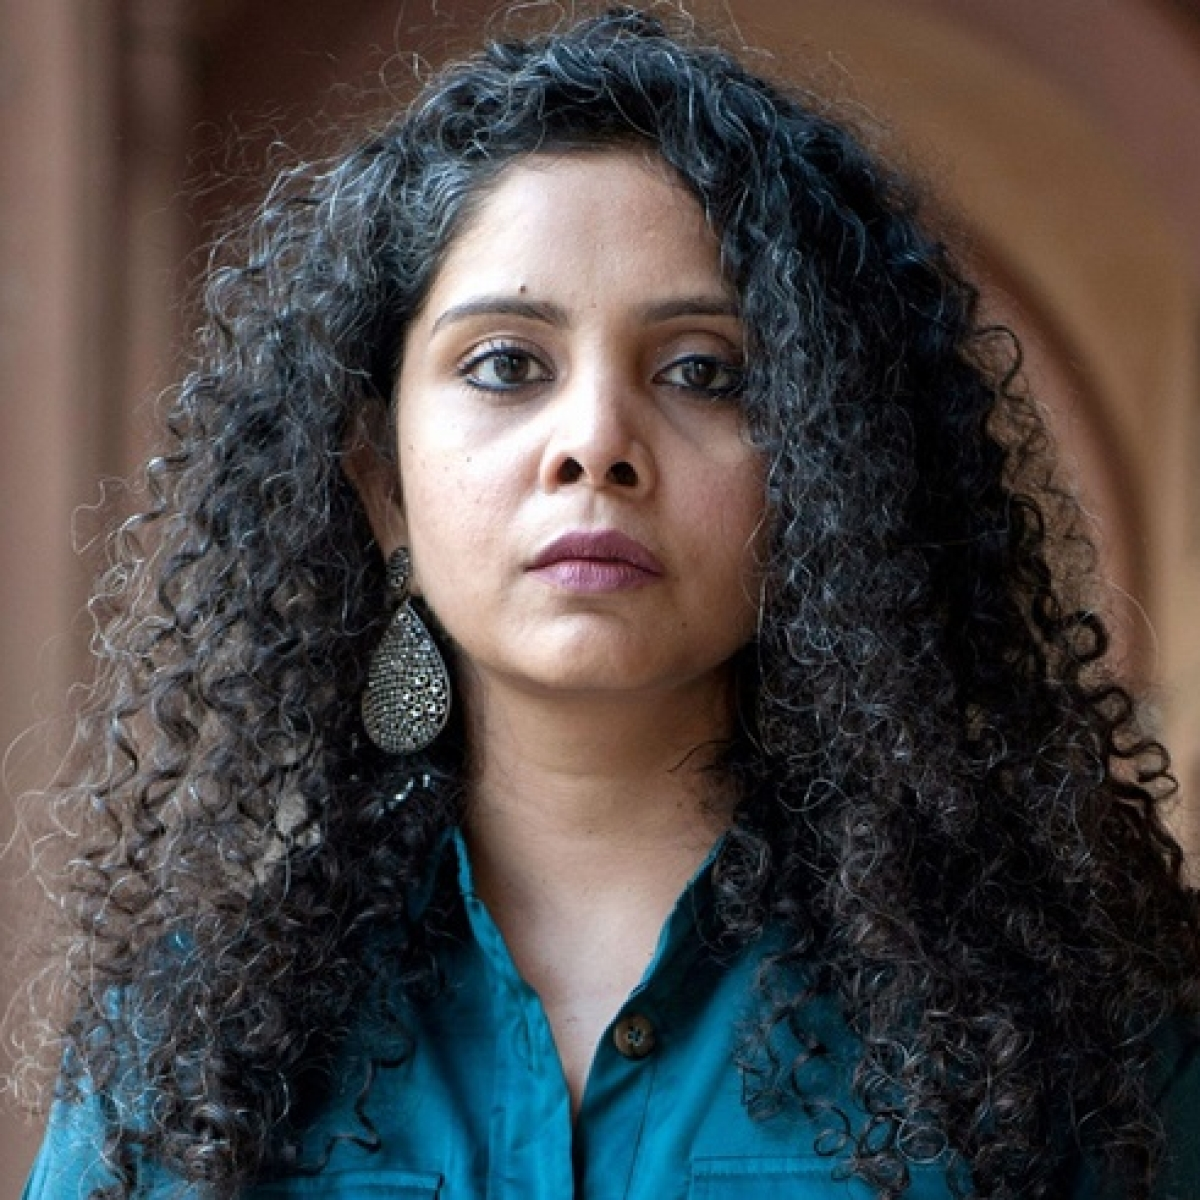 Journalist Rana Ayyub complains of death and rape threats on social media; Navi Mumbai police take cognisance